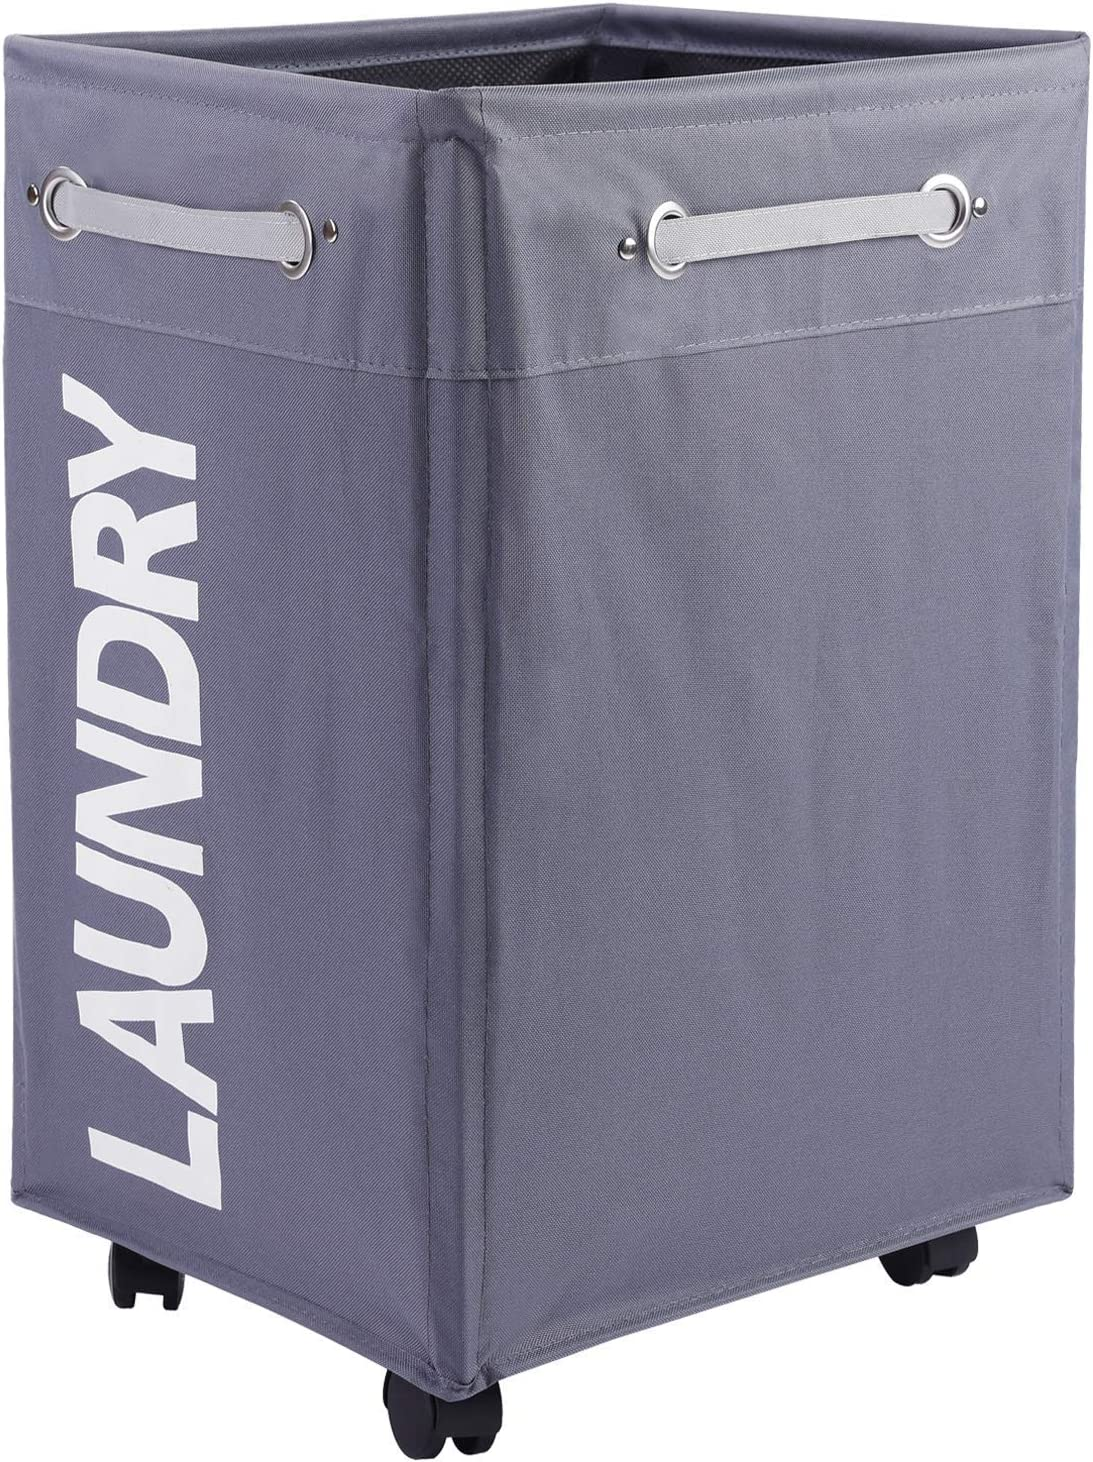 Haundry Rolling Laundry Basket with Wheels, Bathroom Laundry Hamper Large Wheeled Dirty Clothes Bin